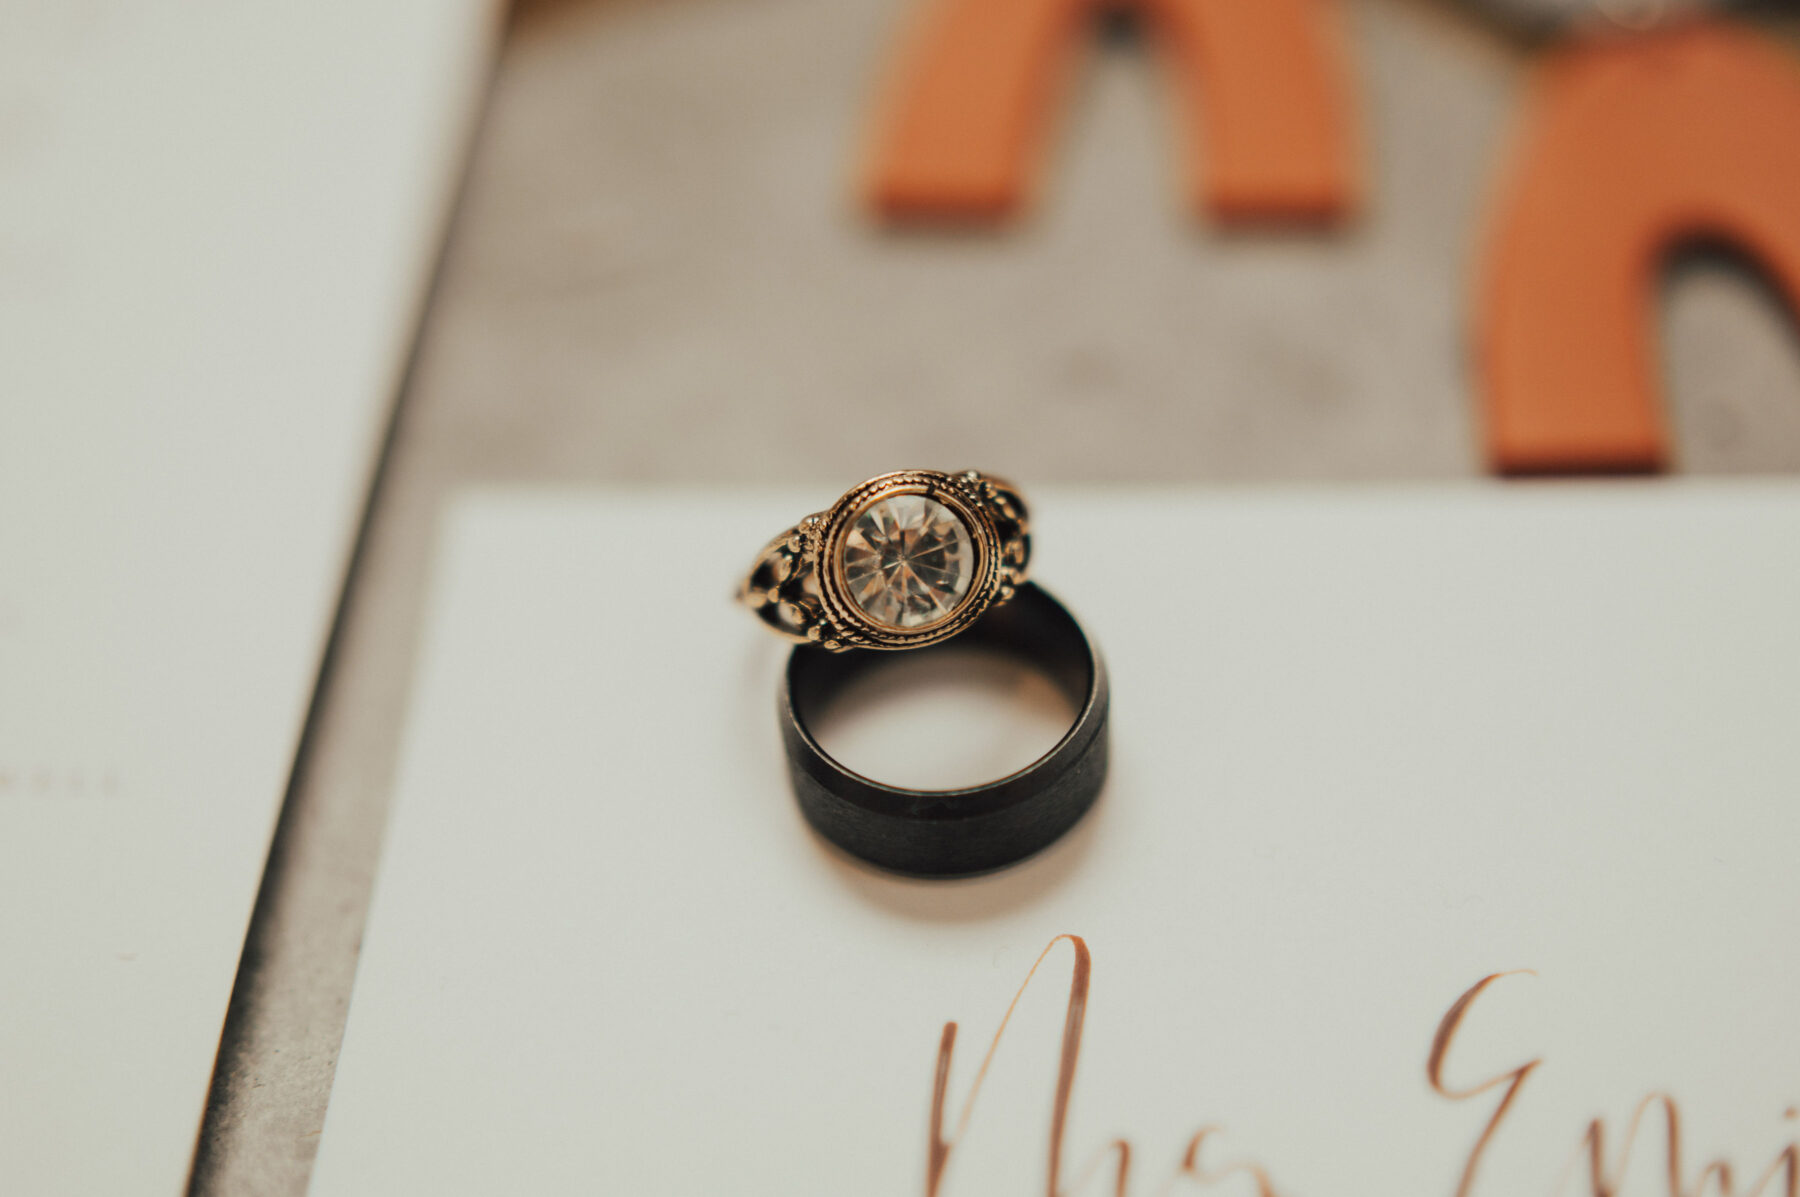 Antique wedding and engagement rings: Bright Bohemian Photo Shoot from Ina J Designs